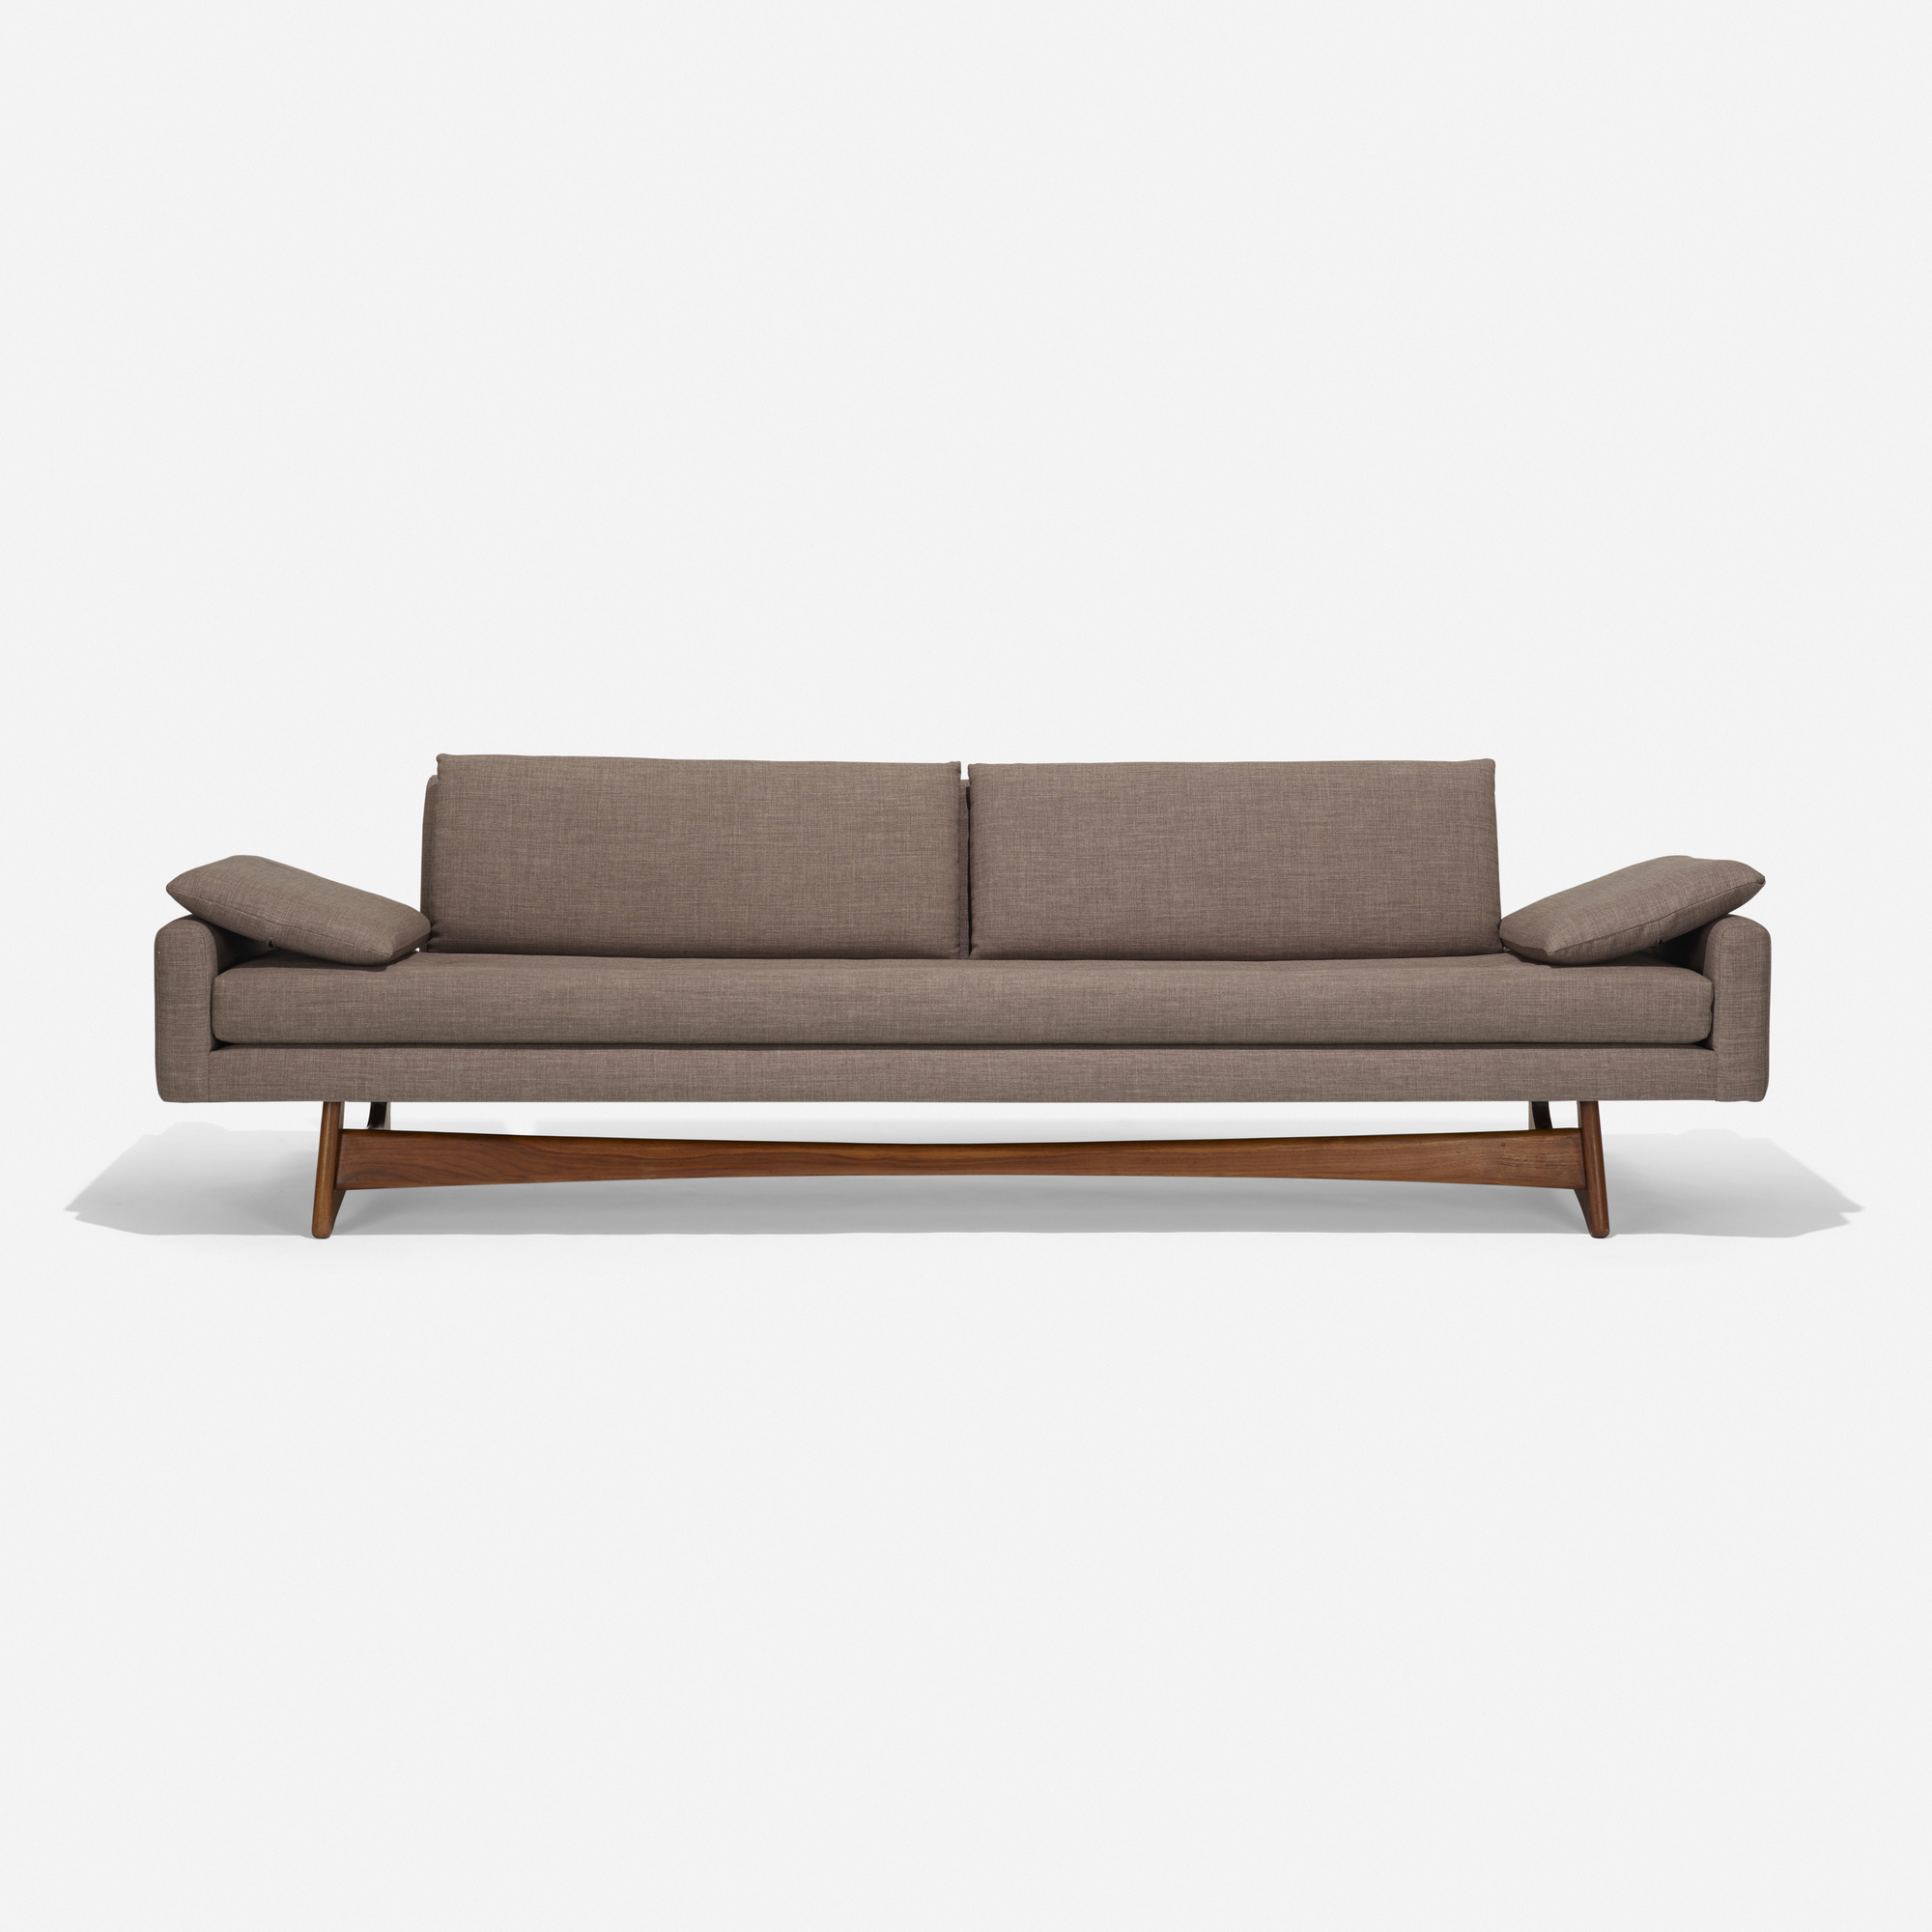 203 Adrian Pearsall Sofa 1 Of 4